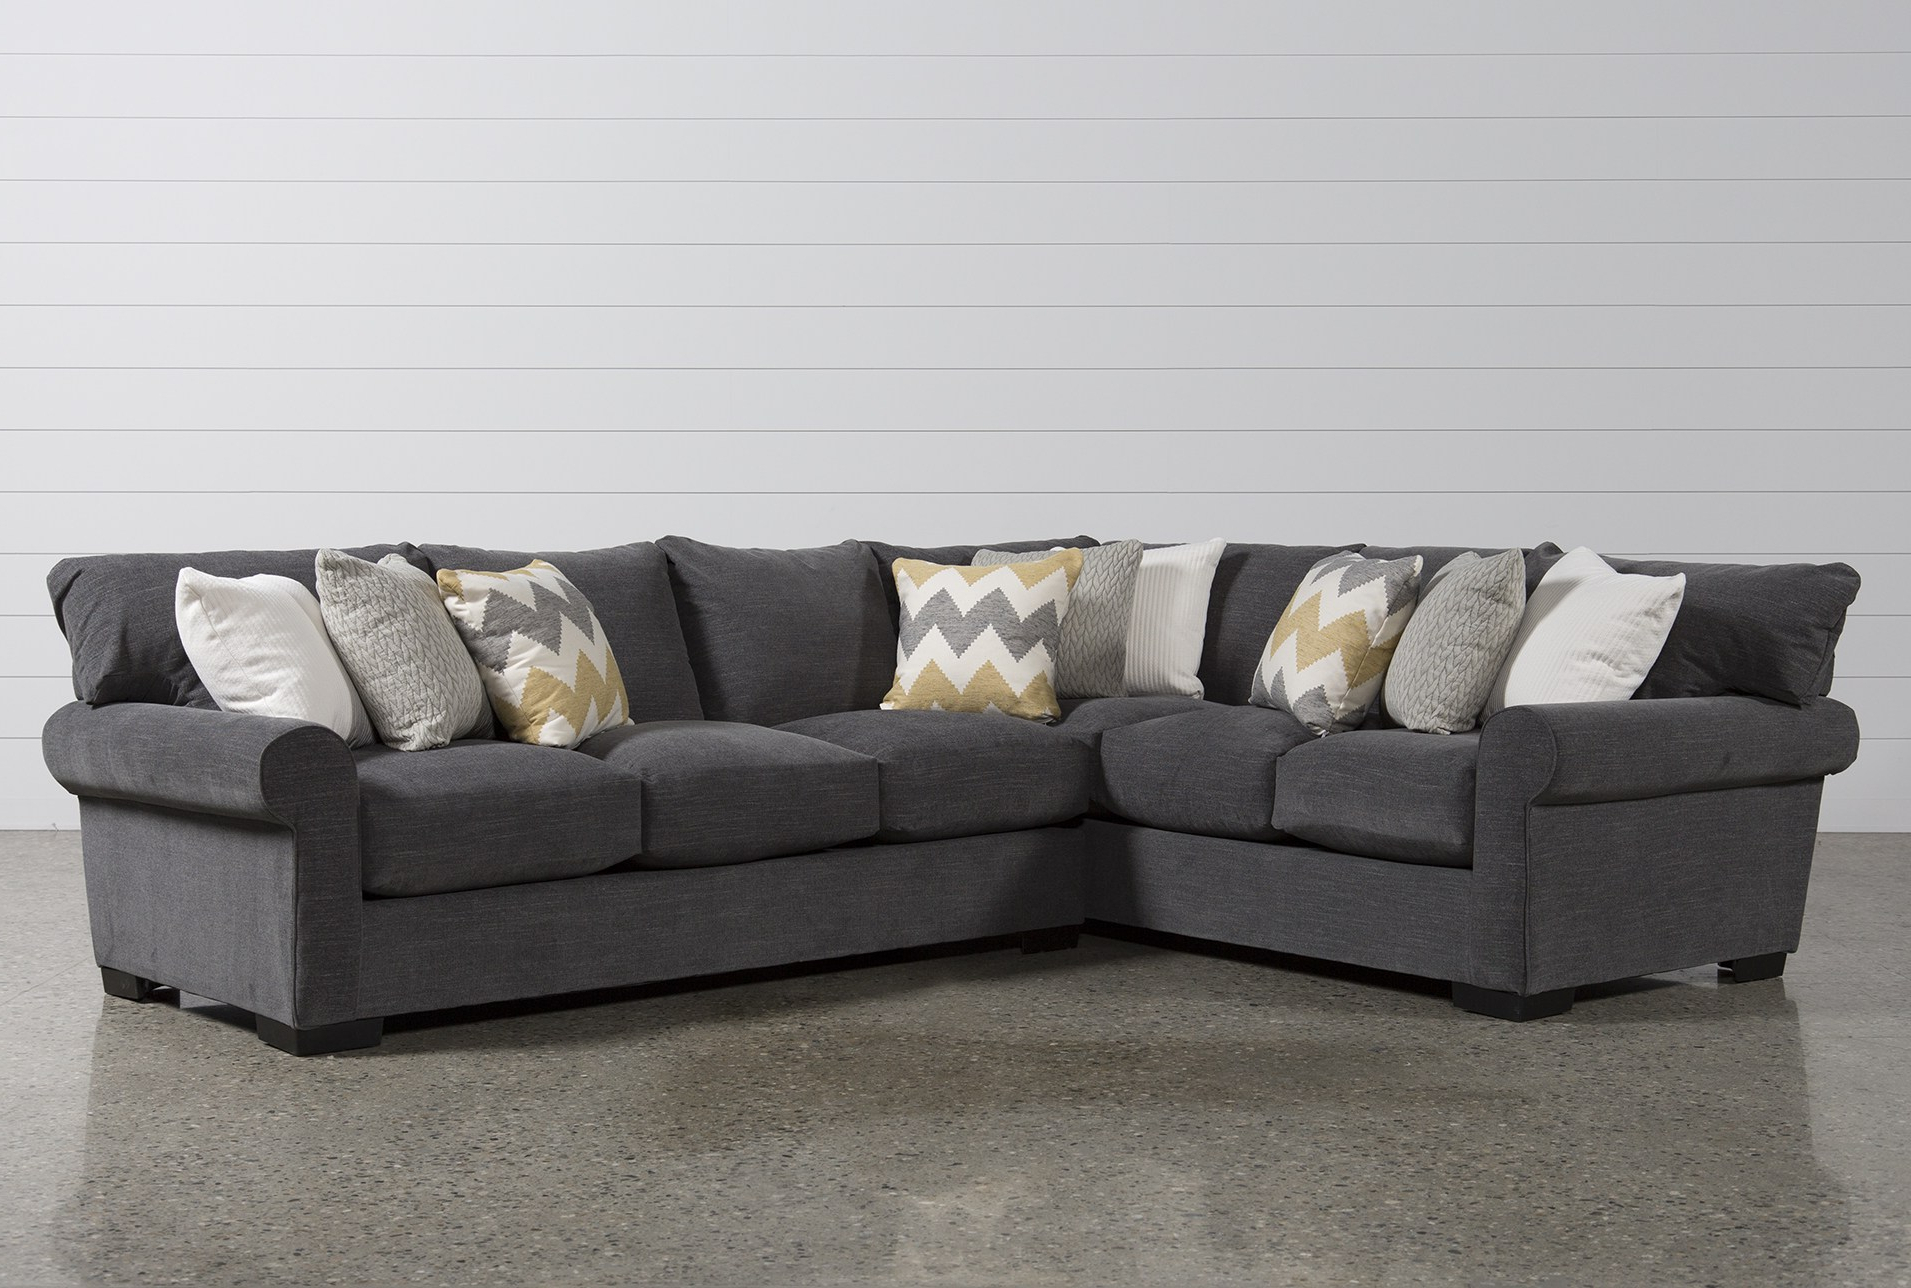 Aquarius Dark Grey 2 Piece Sectionals With Laf Chaise Inside Well Known Captivating Oversized Chaise Lounge Chair Chair Oversized Chaise (View 4 of 20)